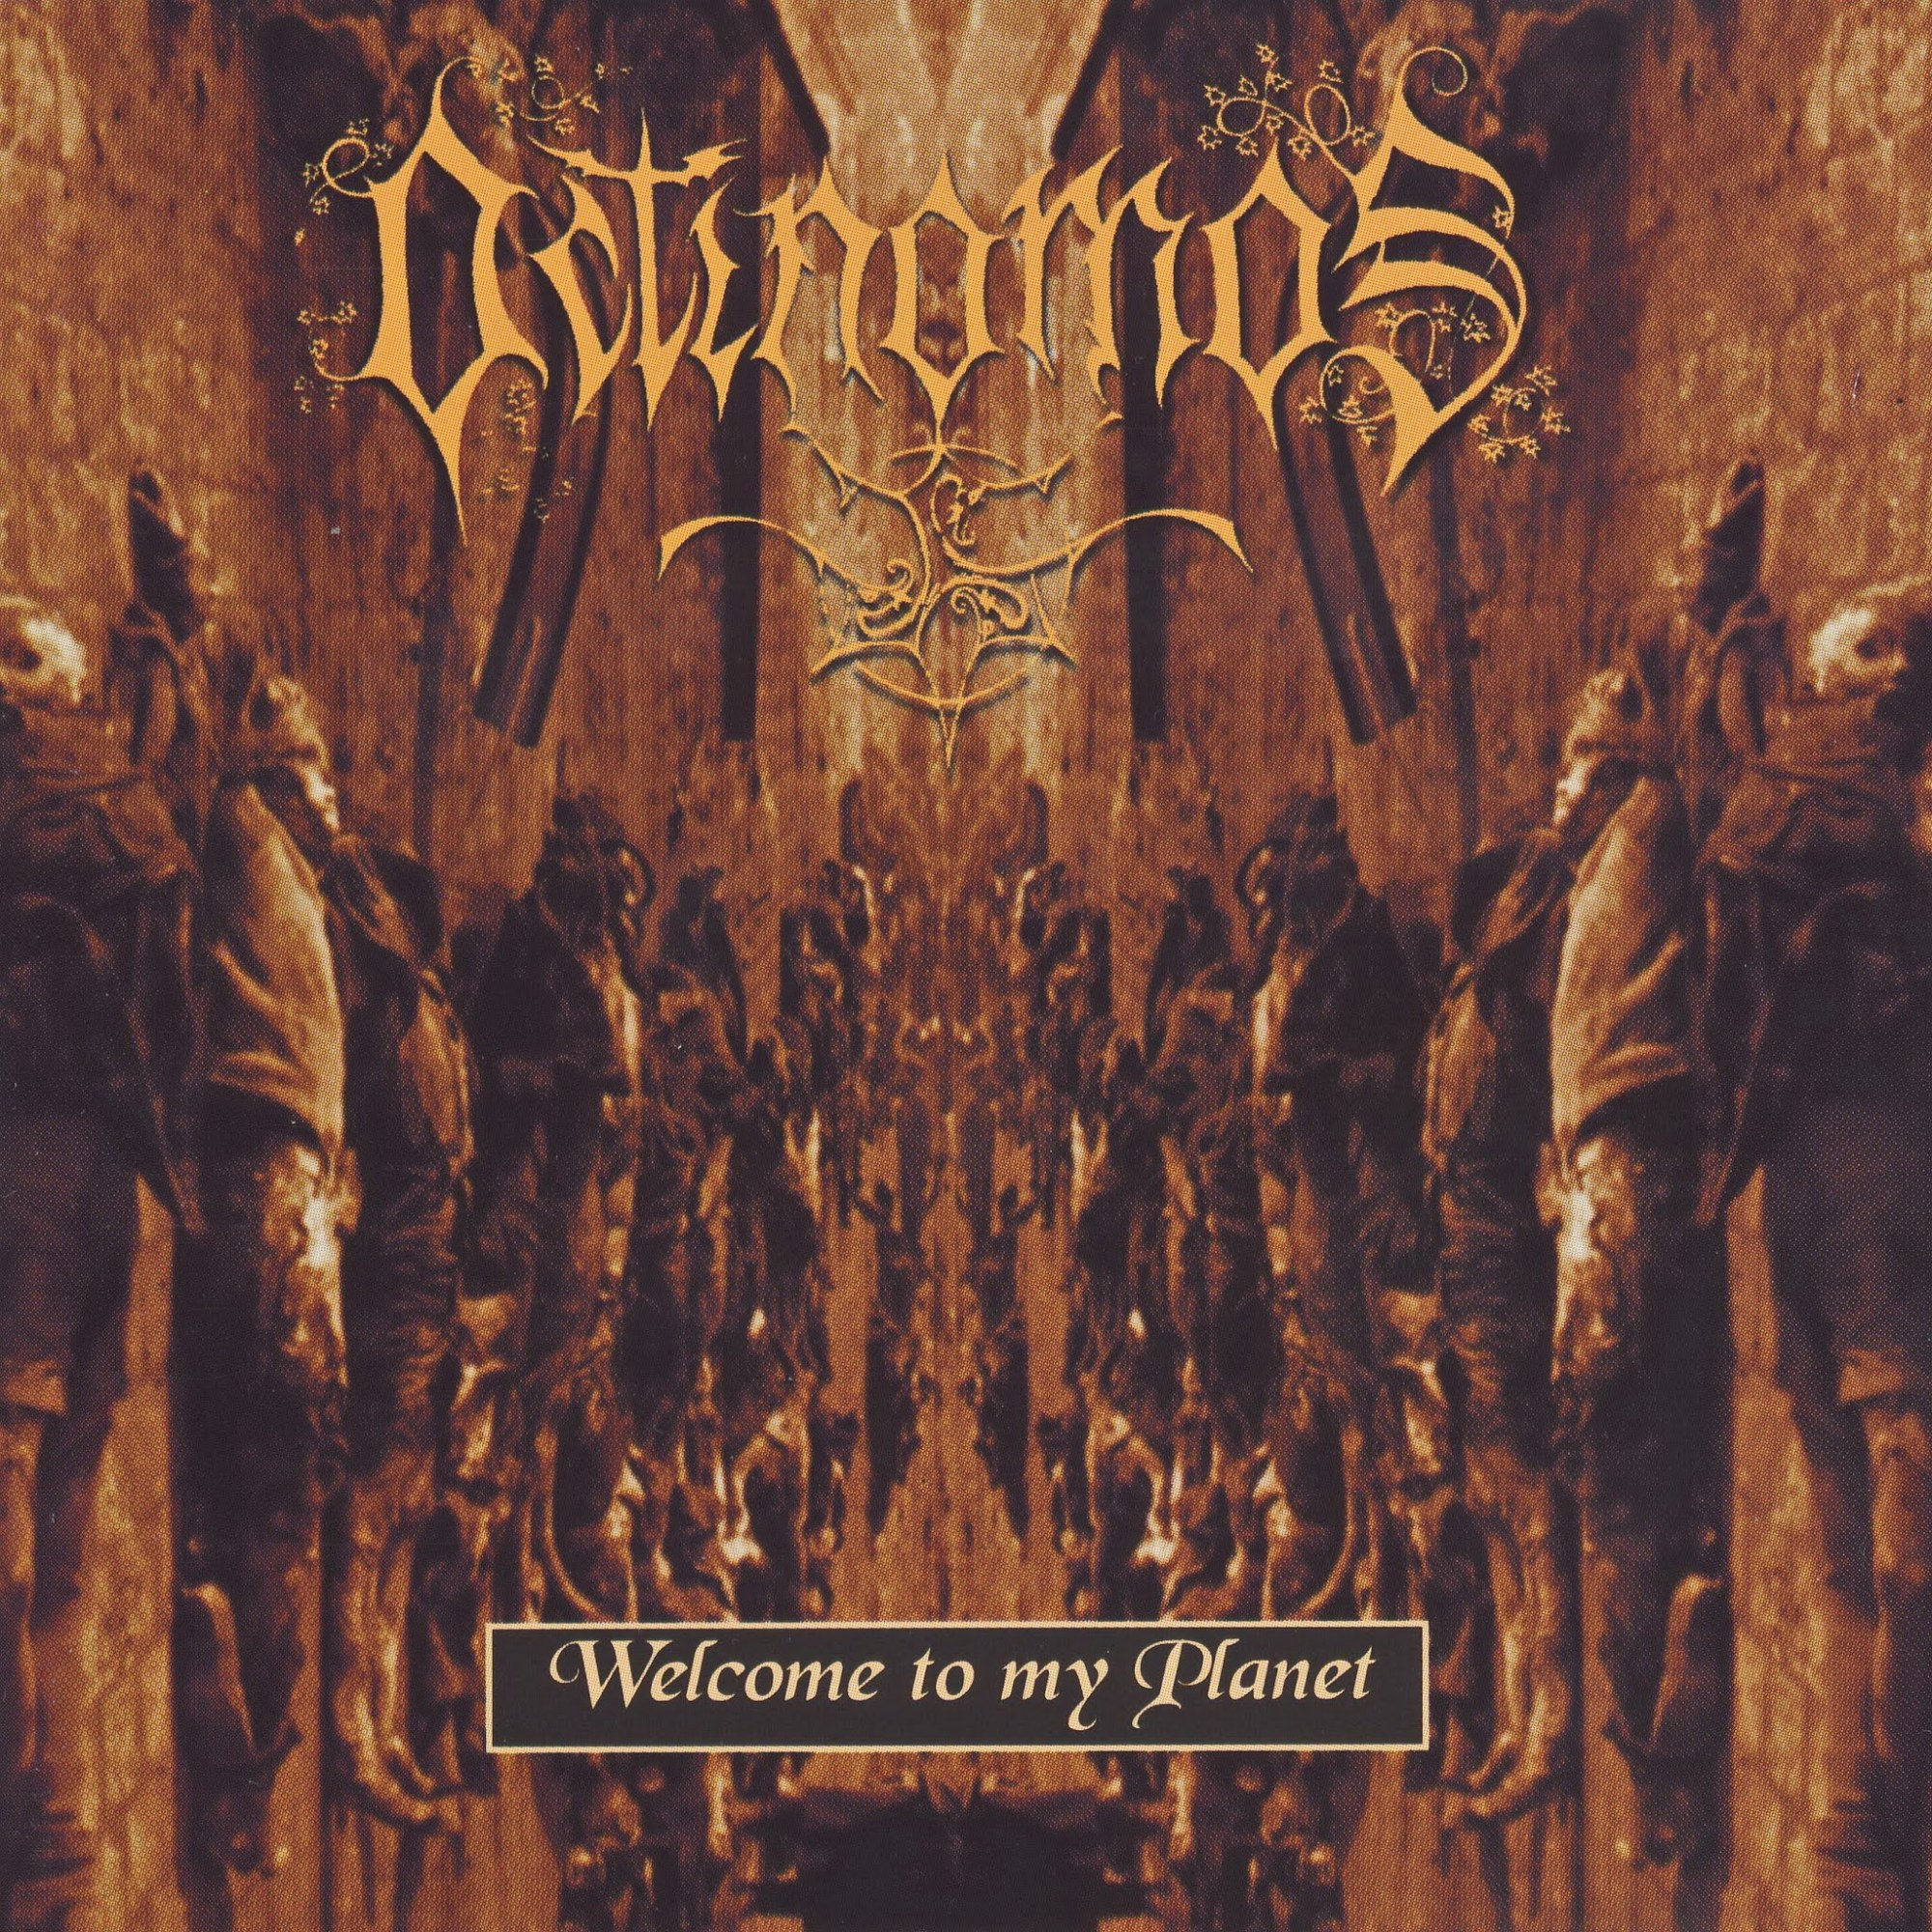 Review for Octinomos - Welcome to My Planet